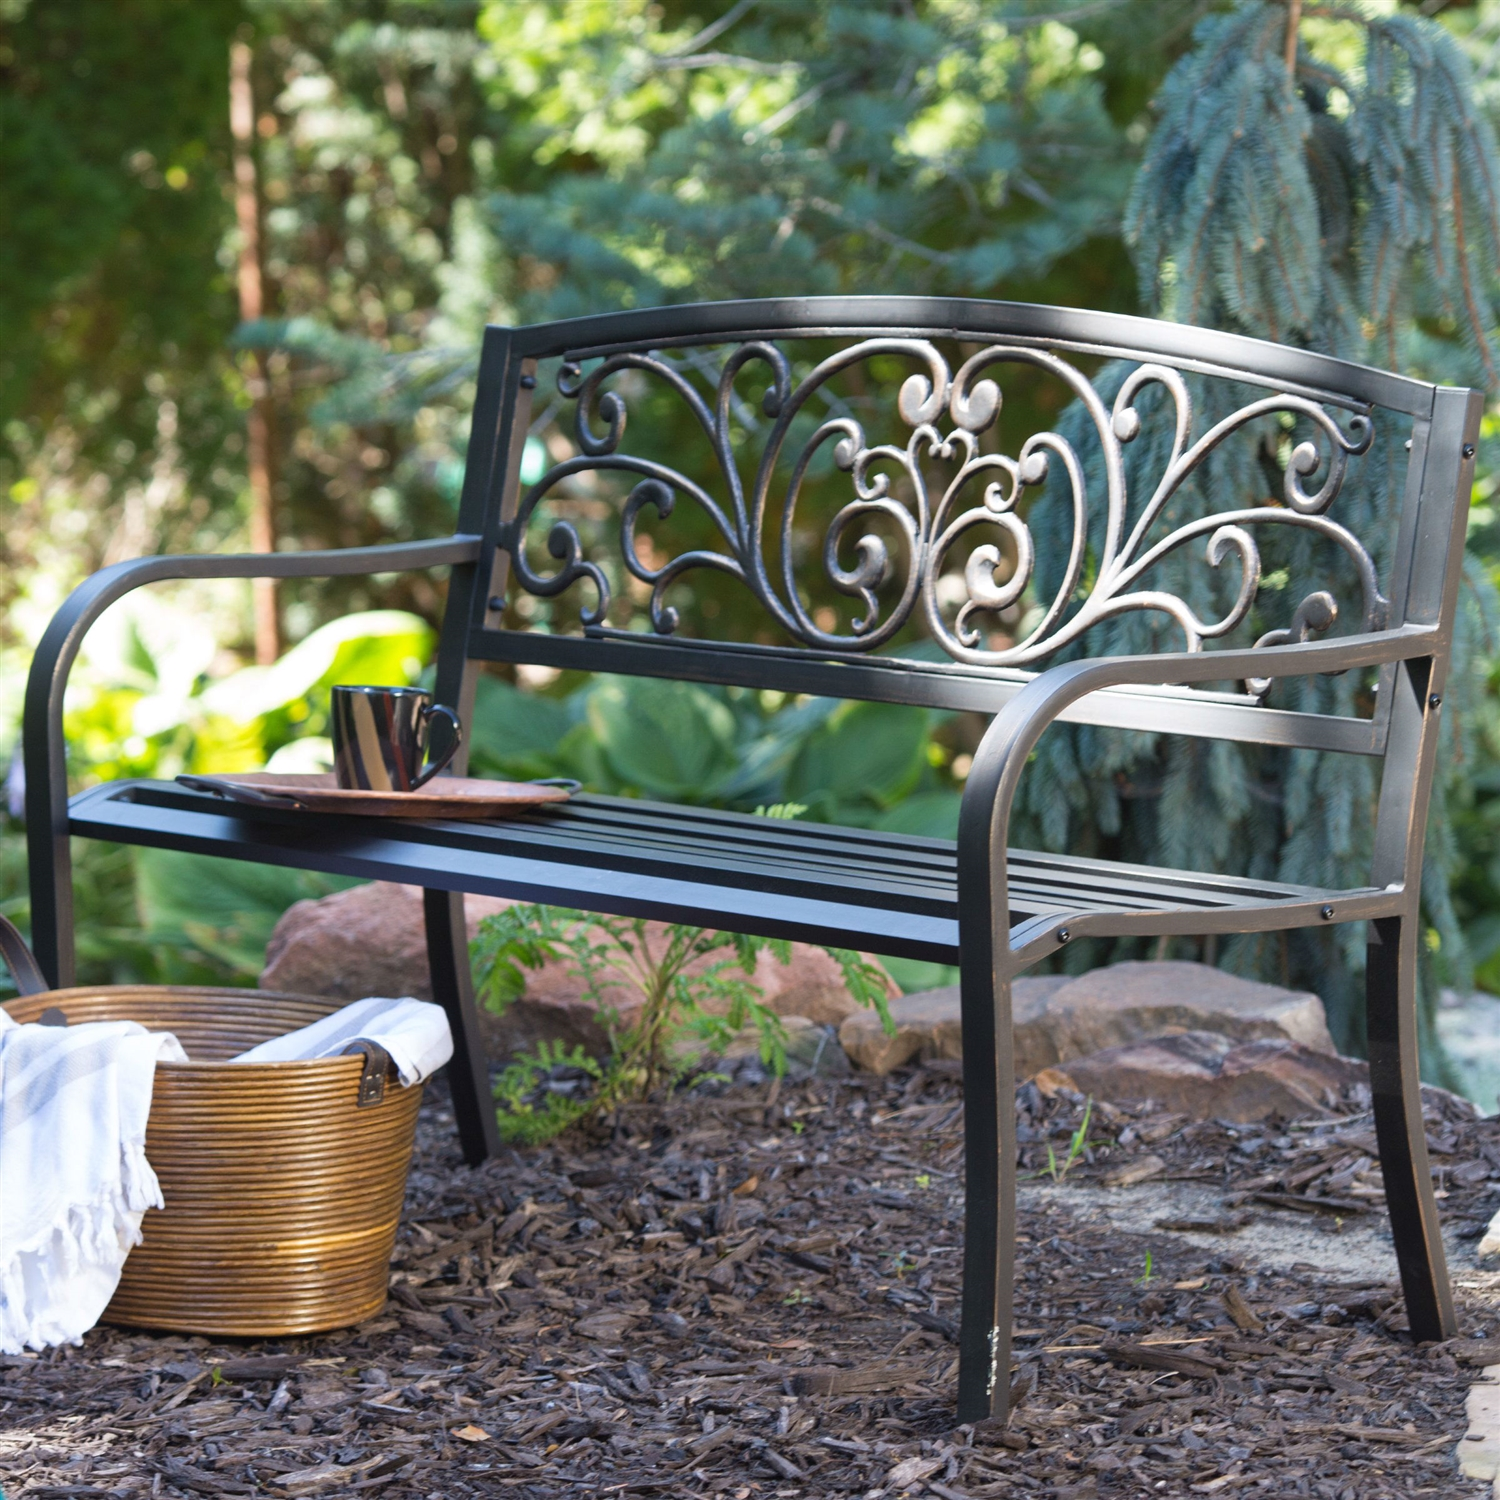 Stupendous Curved Metal Garden Bench With Heart Pattern In Black Antique Bronze Finish Evergreenethics Interior Chair Design Evergreenethicsorg